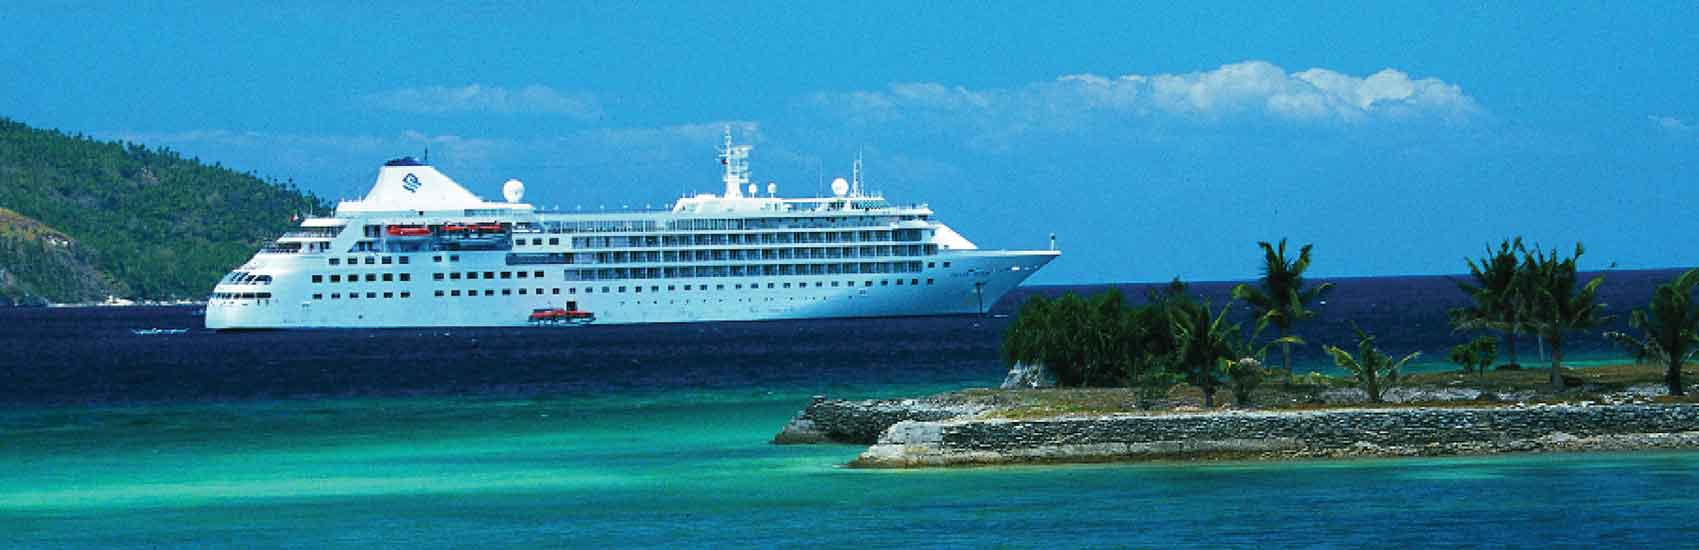 Direct Deal with Silversea Cruises 4